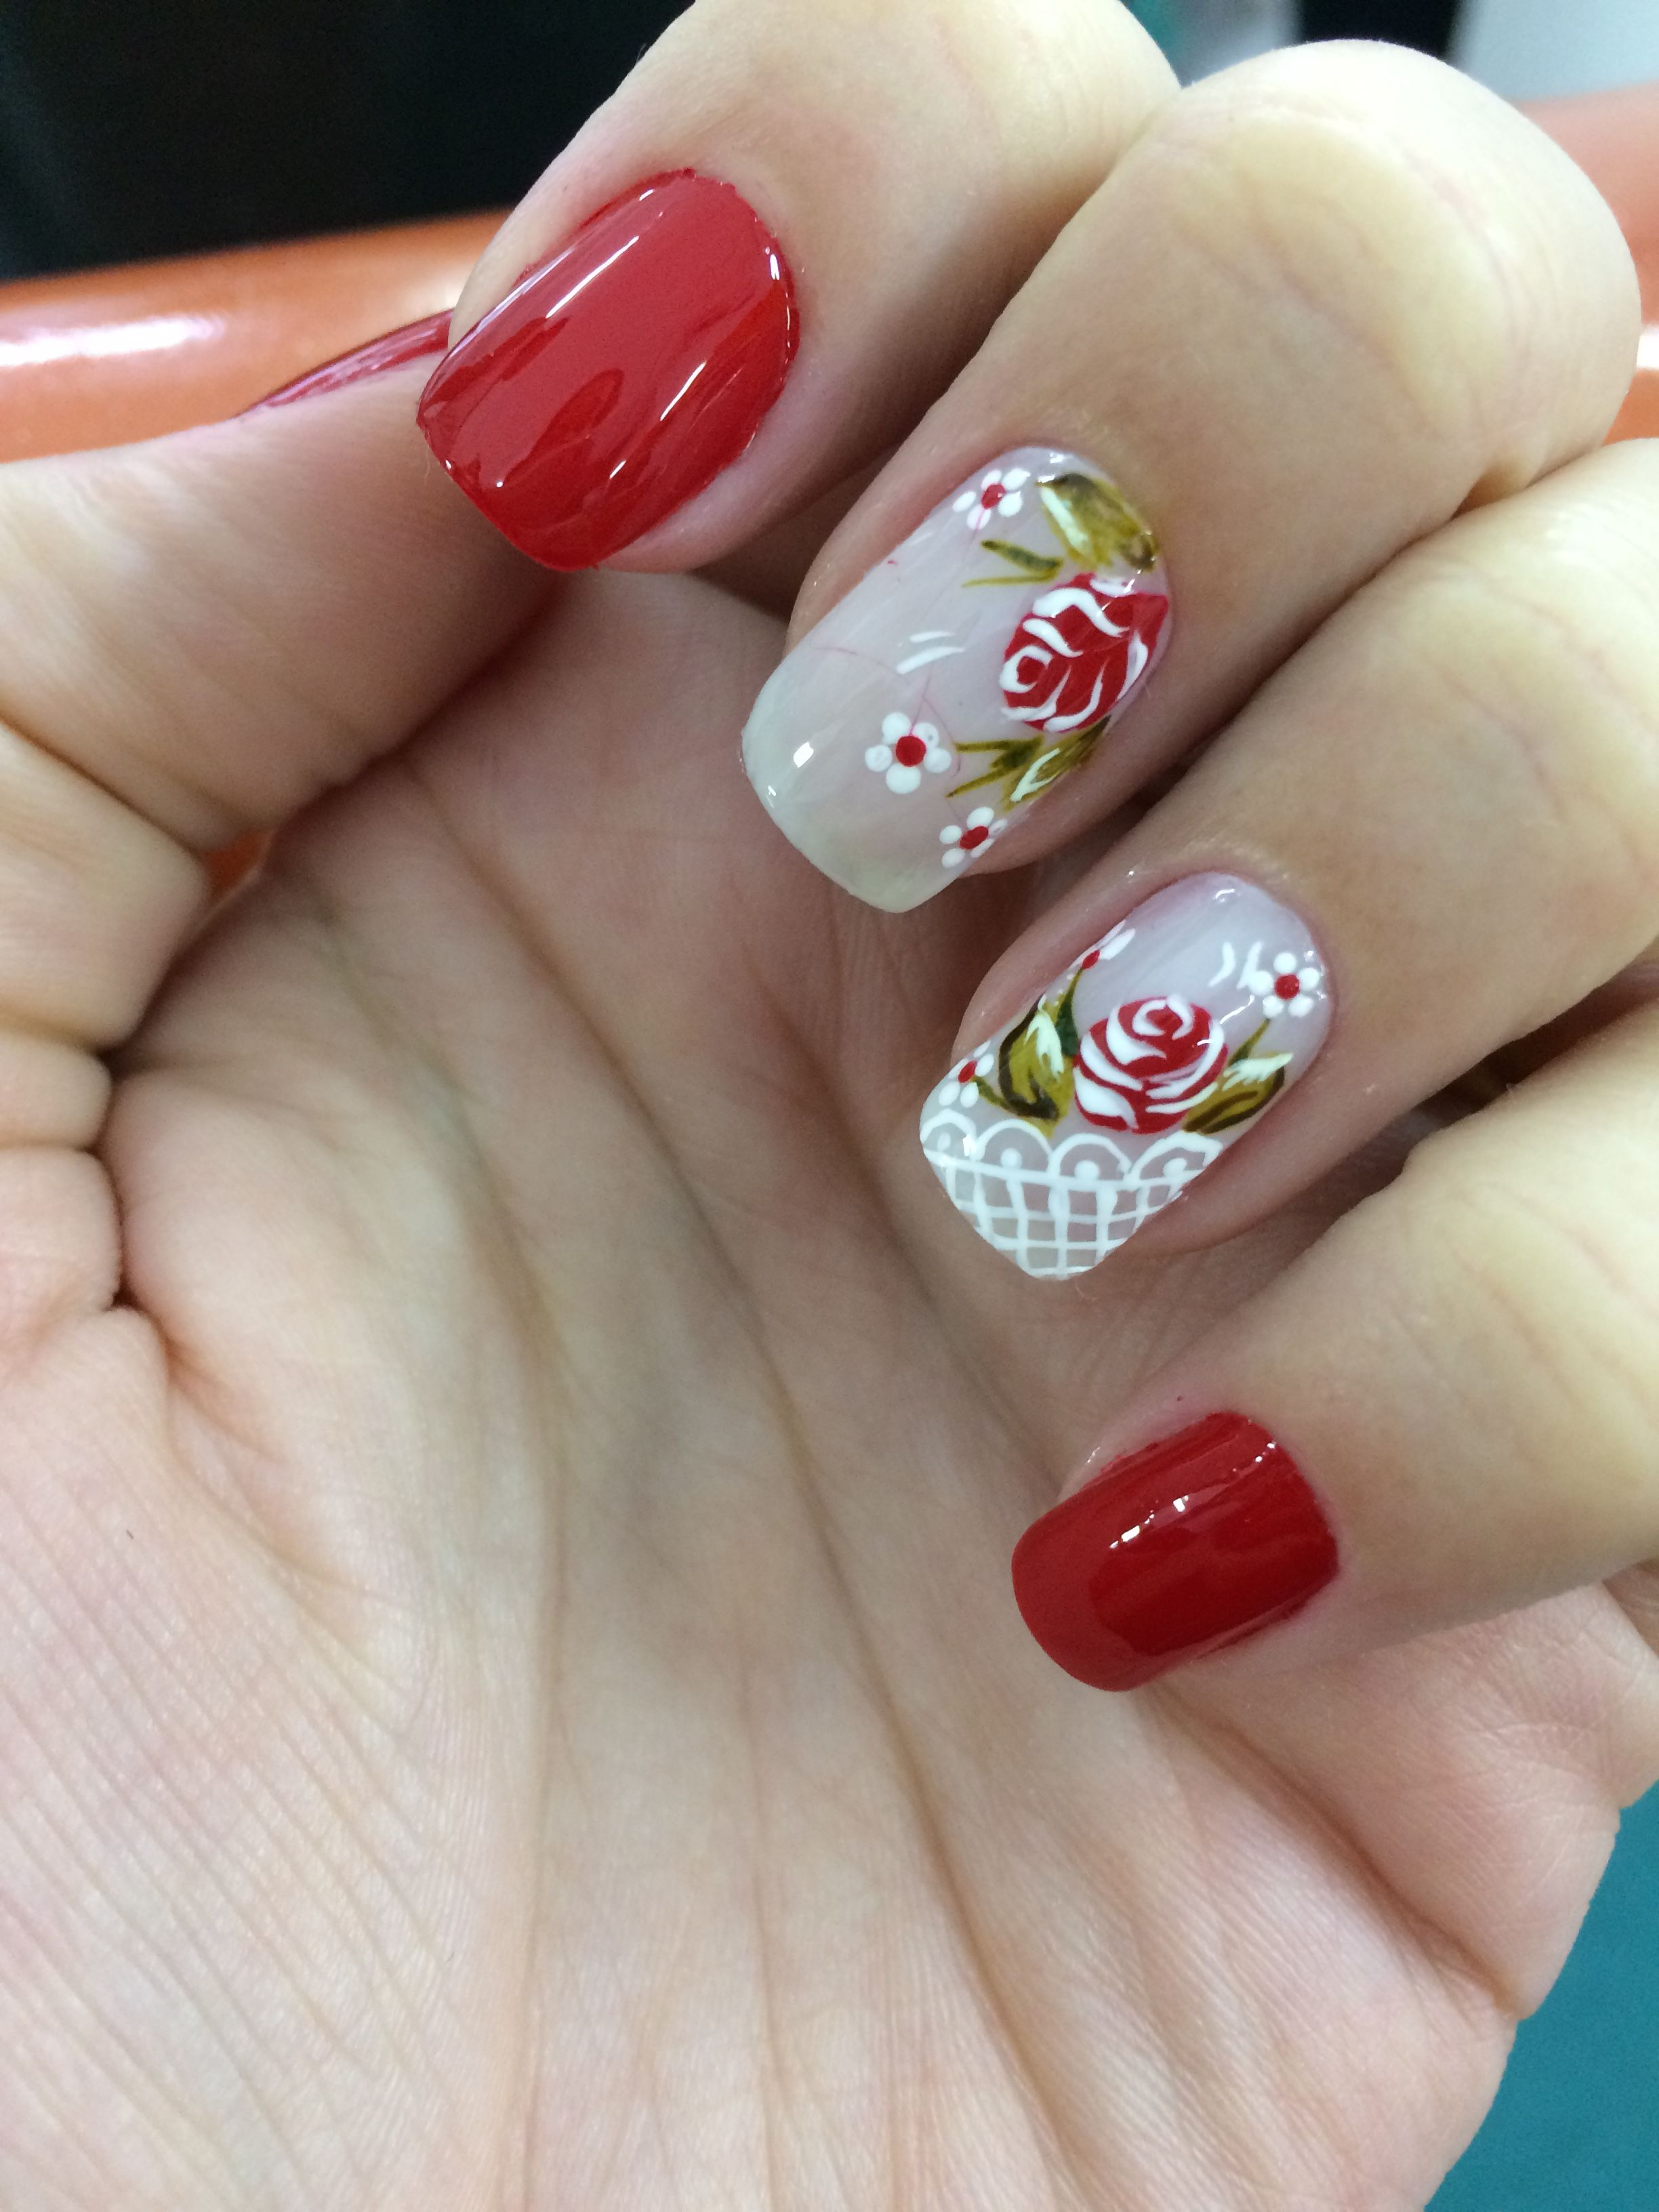 Pin By Veronica Martinez On Uas Pinterest Accent Nails Pretty